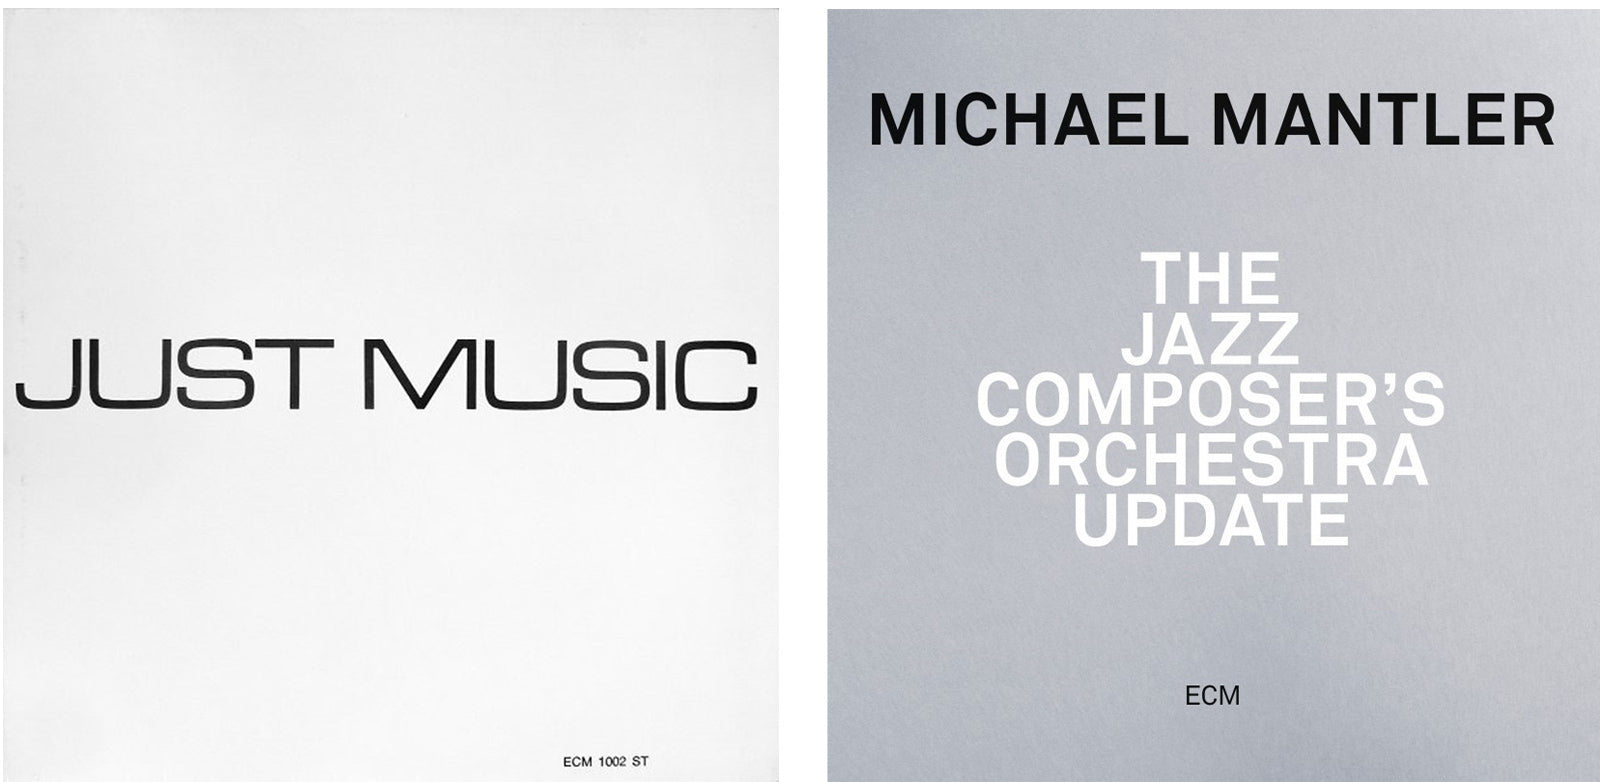 - Just Music and Michael Mantler designs ECM records - Adsum